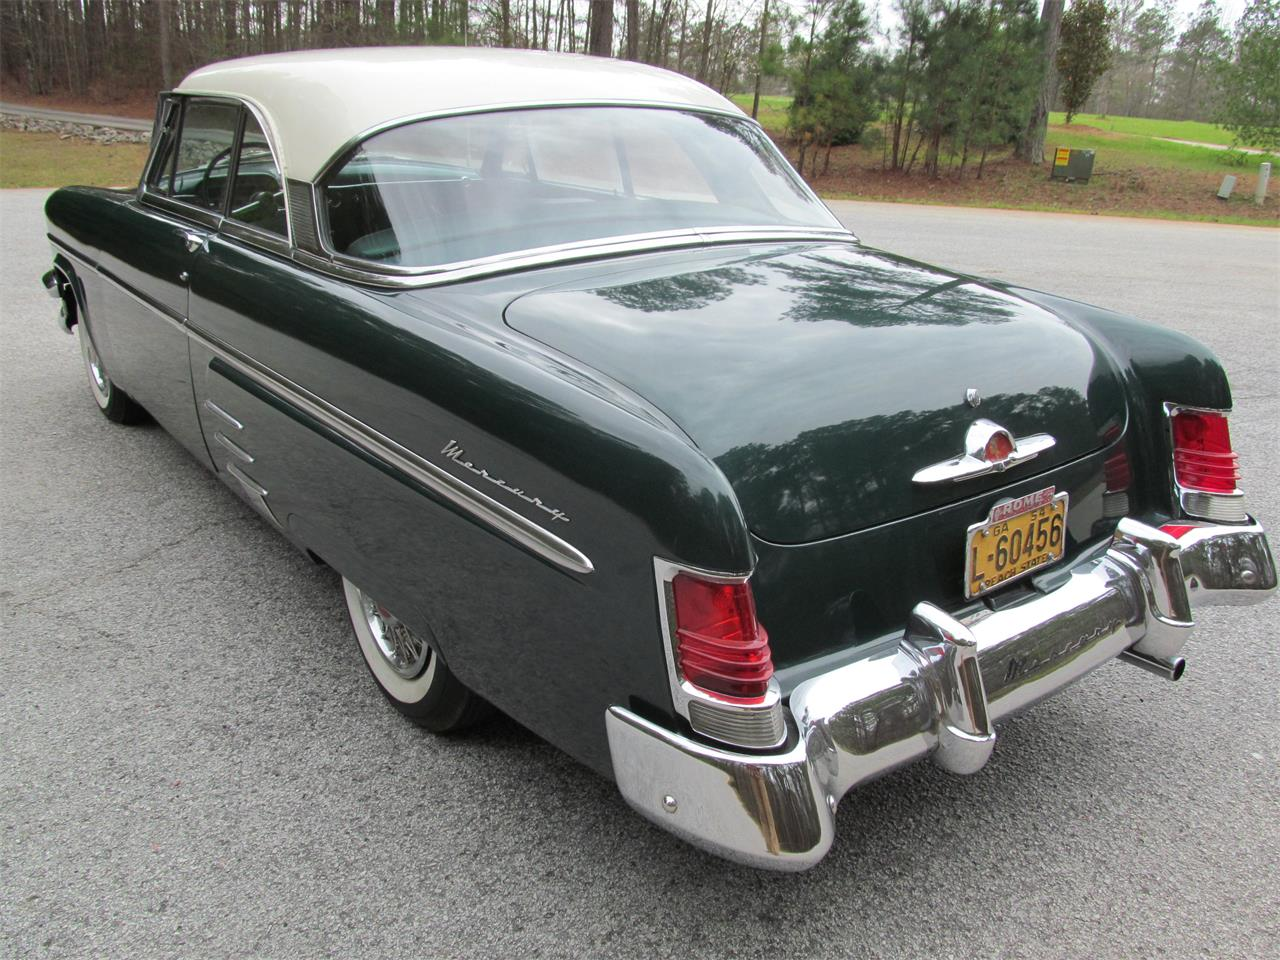 Large Picture of '54 Mercury Monterey located in Fayetteville Georgia - $24,900.00 - N46J